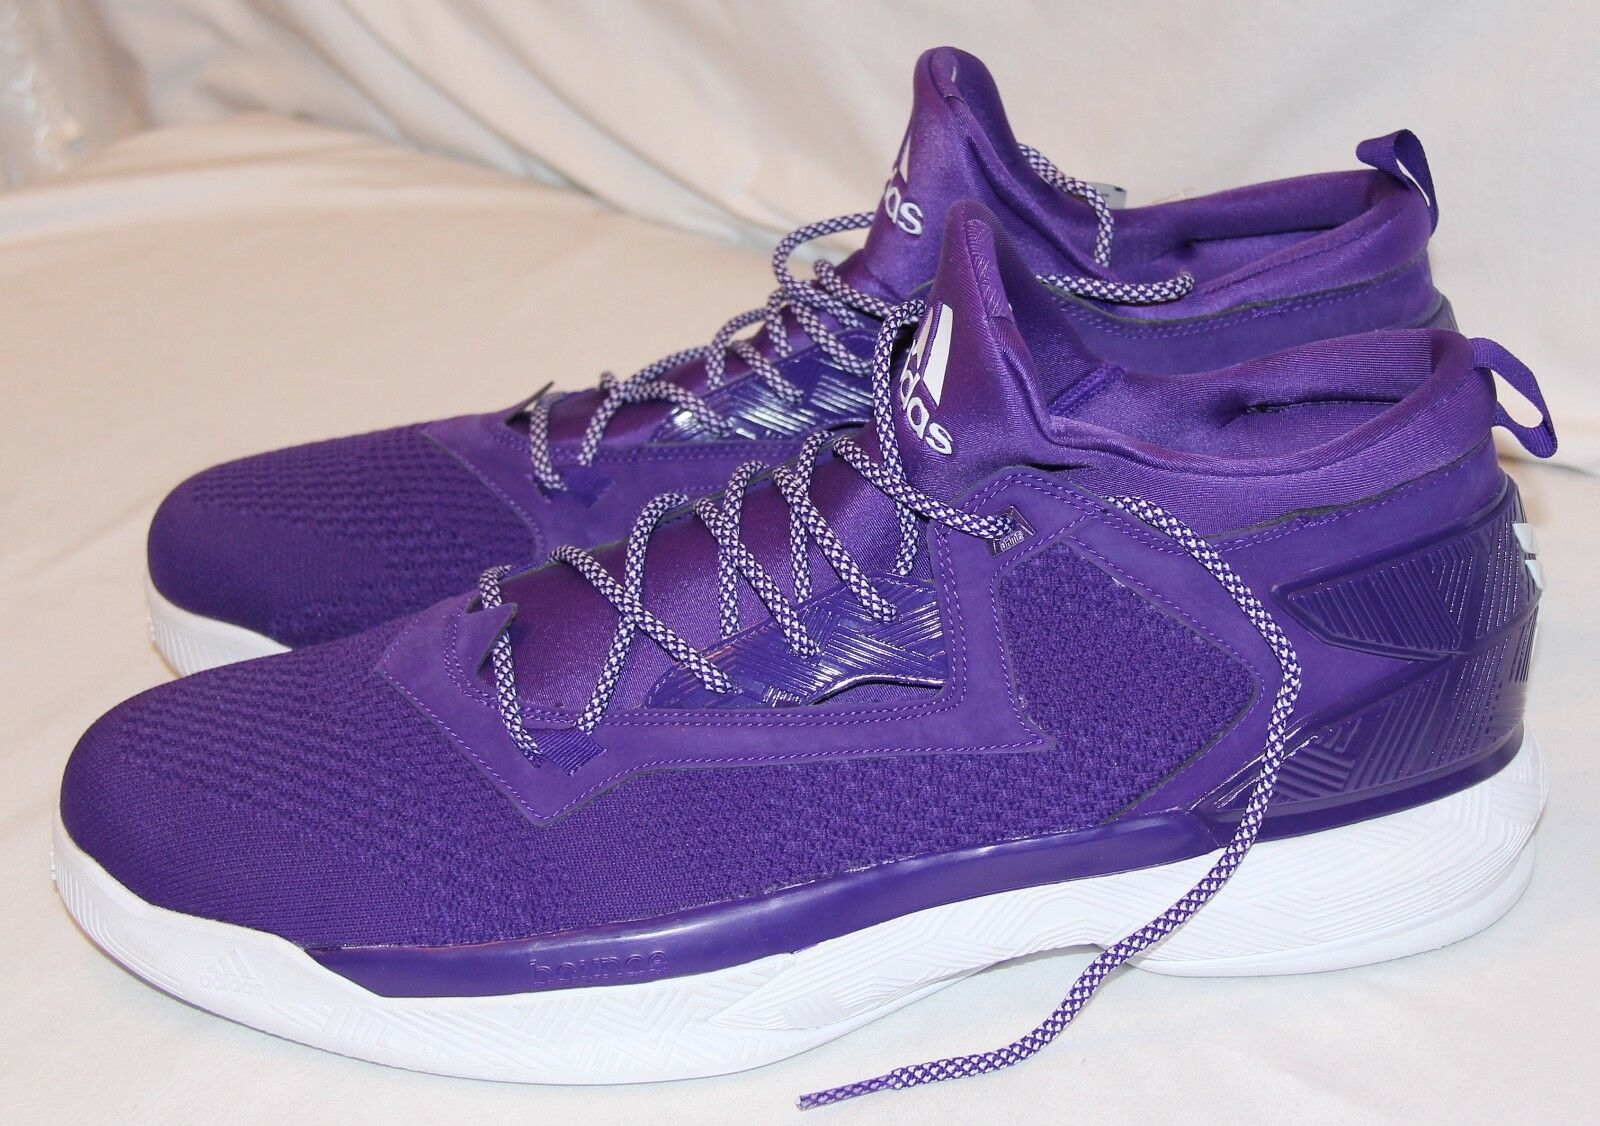 adidas  Violet  New homme Basketball chaussures 19 athlétique High Top